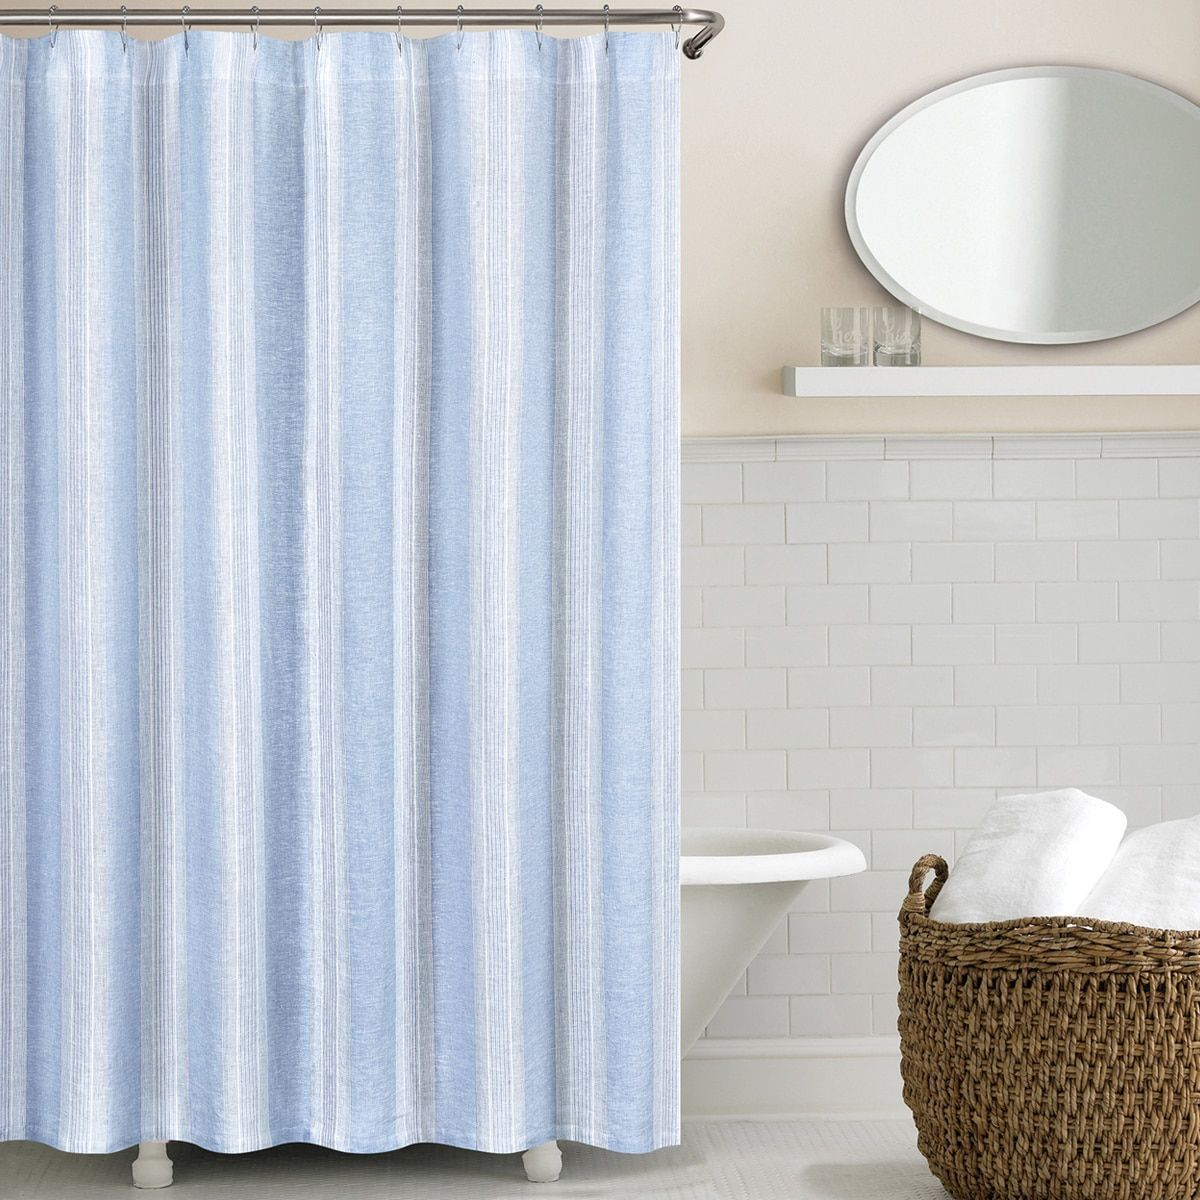 Online Shopping Bedding Furniture Electronics Jewelry Clothing More Curtains Curtain Accessories Bathroom Accessories